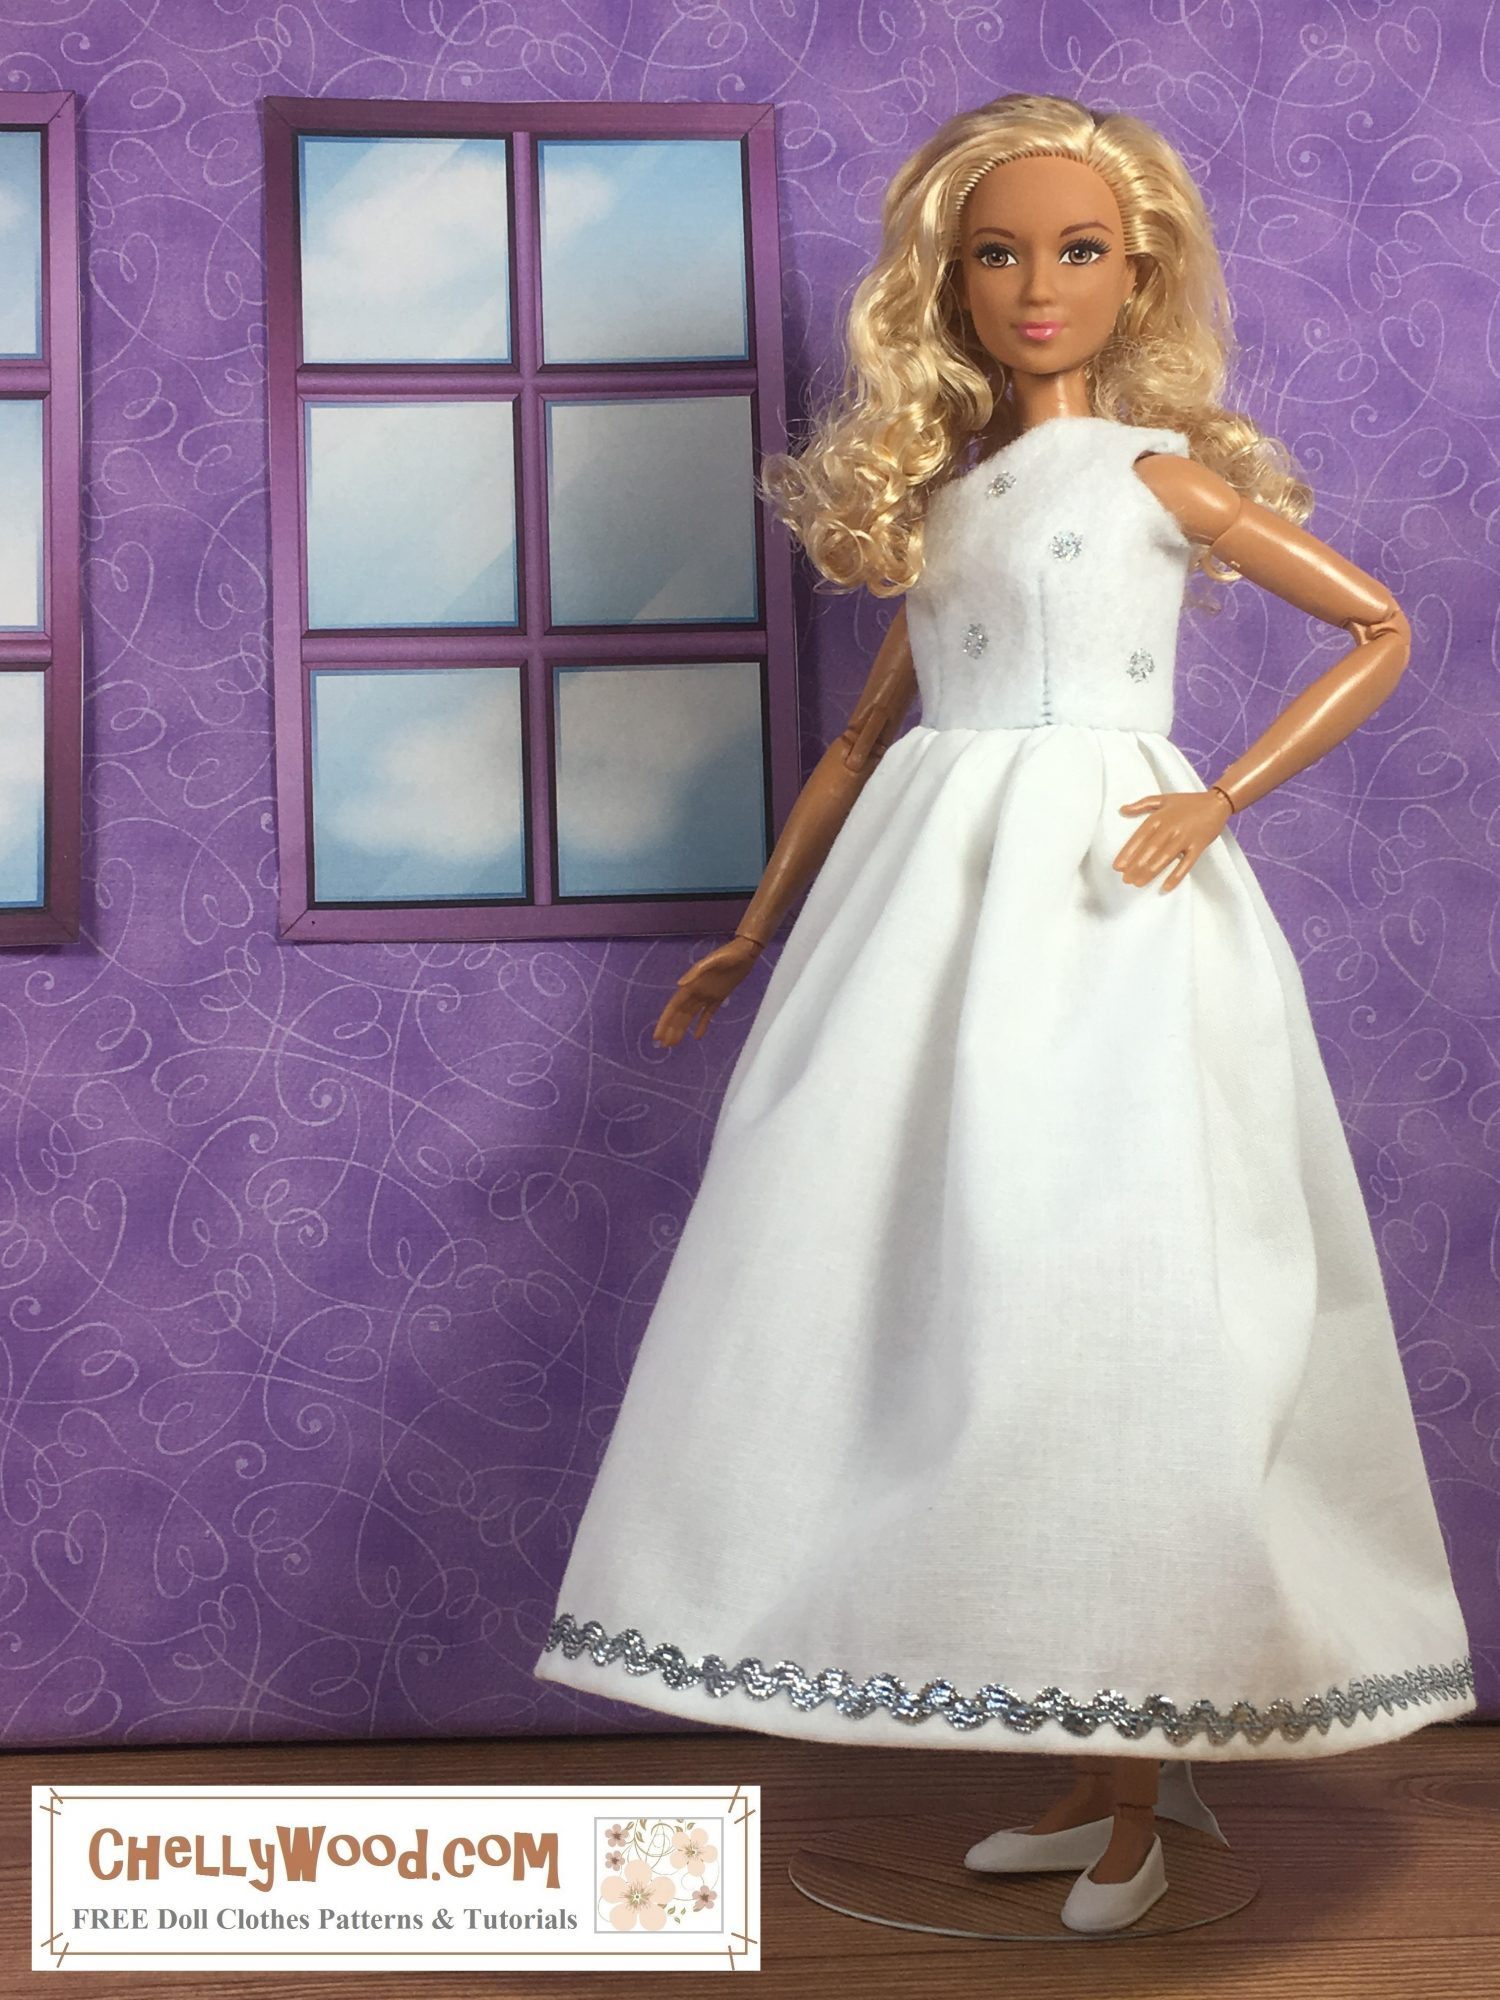 The image shows a Mattel Made to Move Barbie doll modeling a handmade wedding dress with a bodice that covers only one shoulder. The bodice is made of felt while the skirt is made of cotton. The skirt is trimmed in silver rickrack while the bodice is sprinkled with silver polka dots. The doll stands in a simple diorama with purple walls and tiny windows. If you'd like to make this doll dress, you can click on the link in the caption, and it will take you to the page where the pattern and tutorials for making this dress can be found.